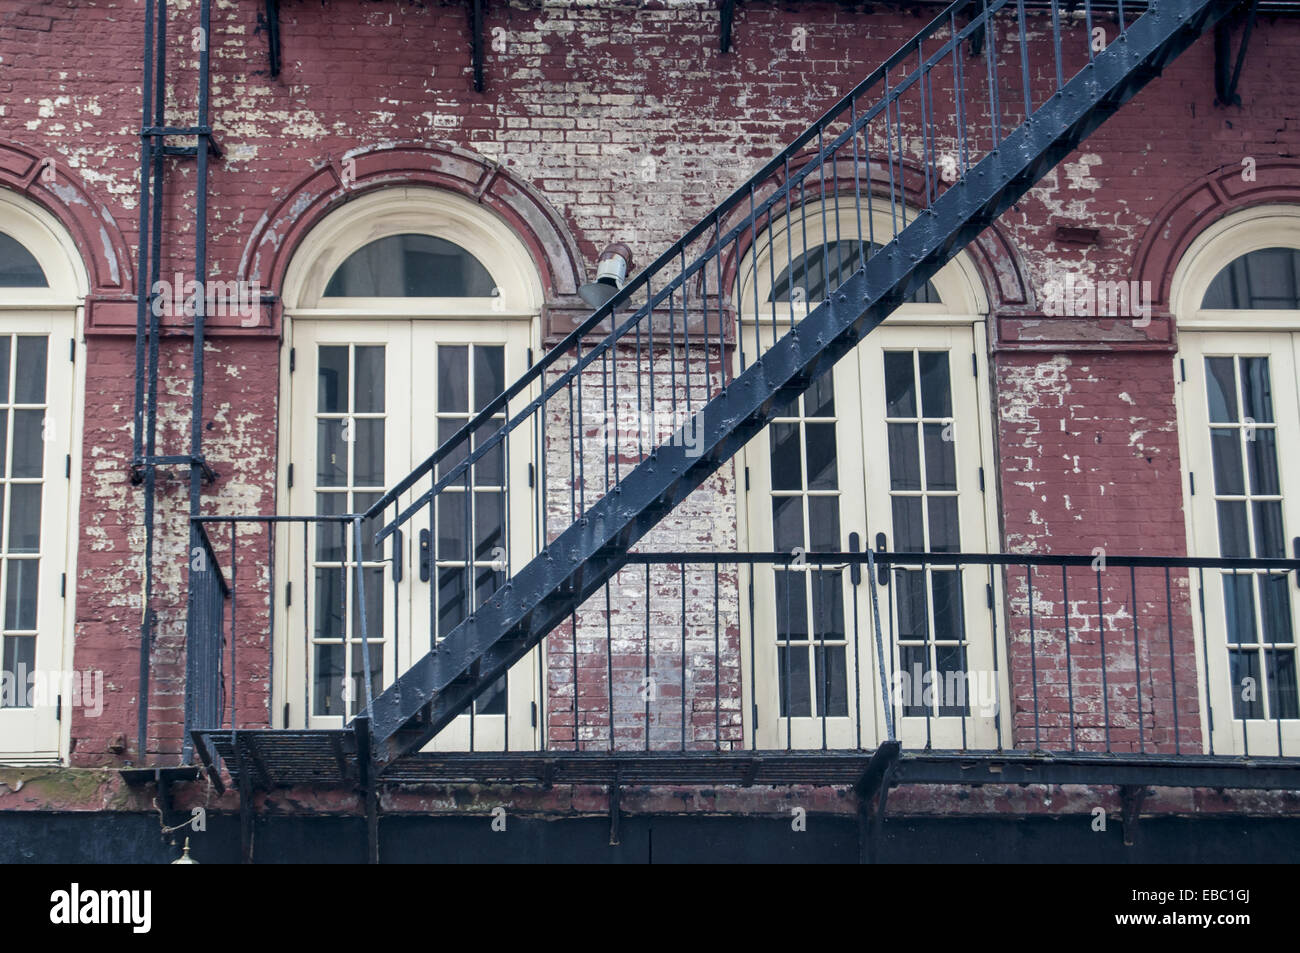 Elegant Fire Escape Stairs, Lower Manhattan, New York City.